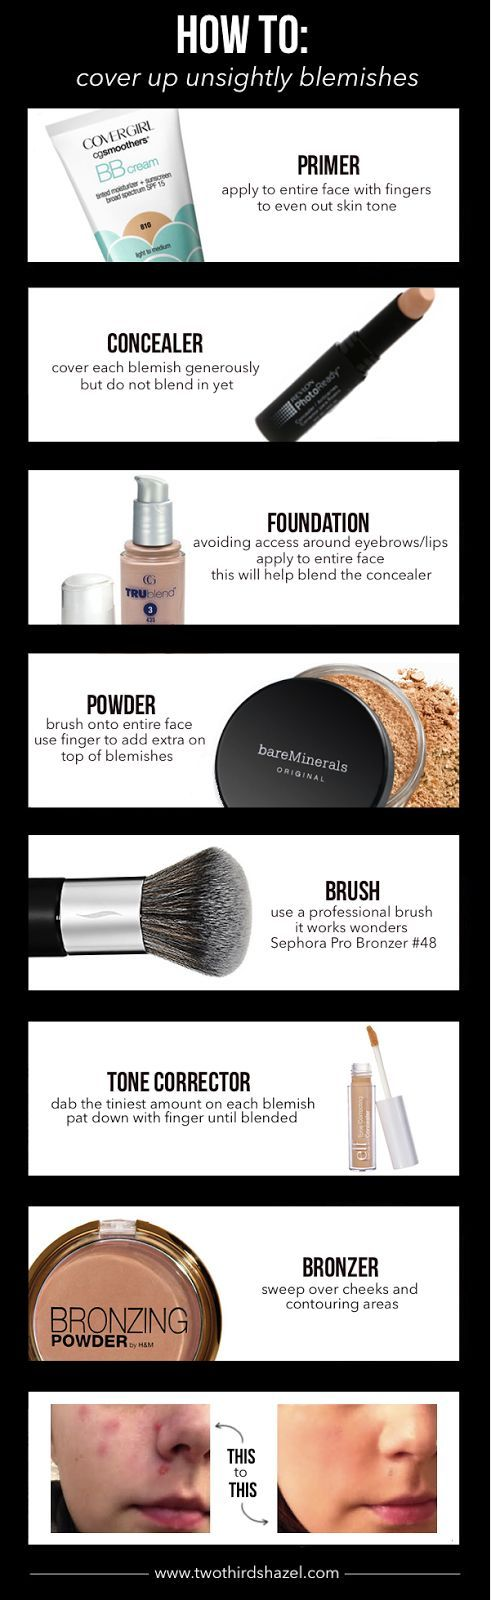 17 perfect step by step makeup tutorials sensitive skin makeup 17 perfect step by step makeup tutorials ccuart Image collections